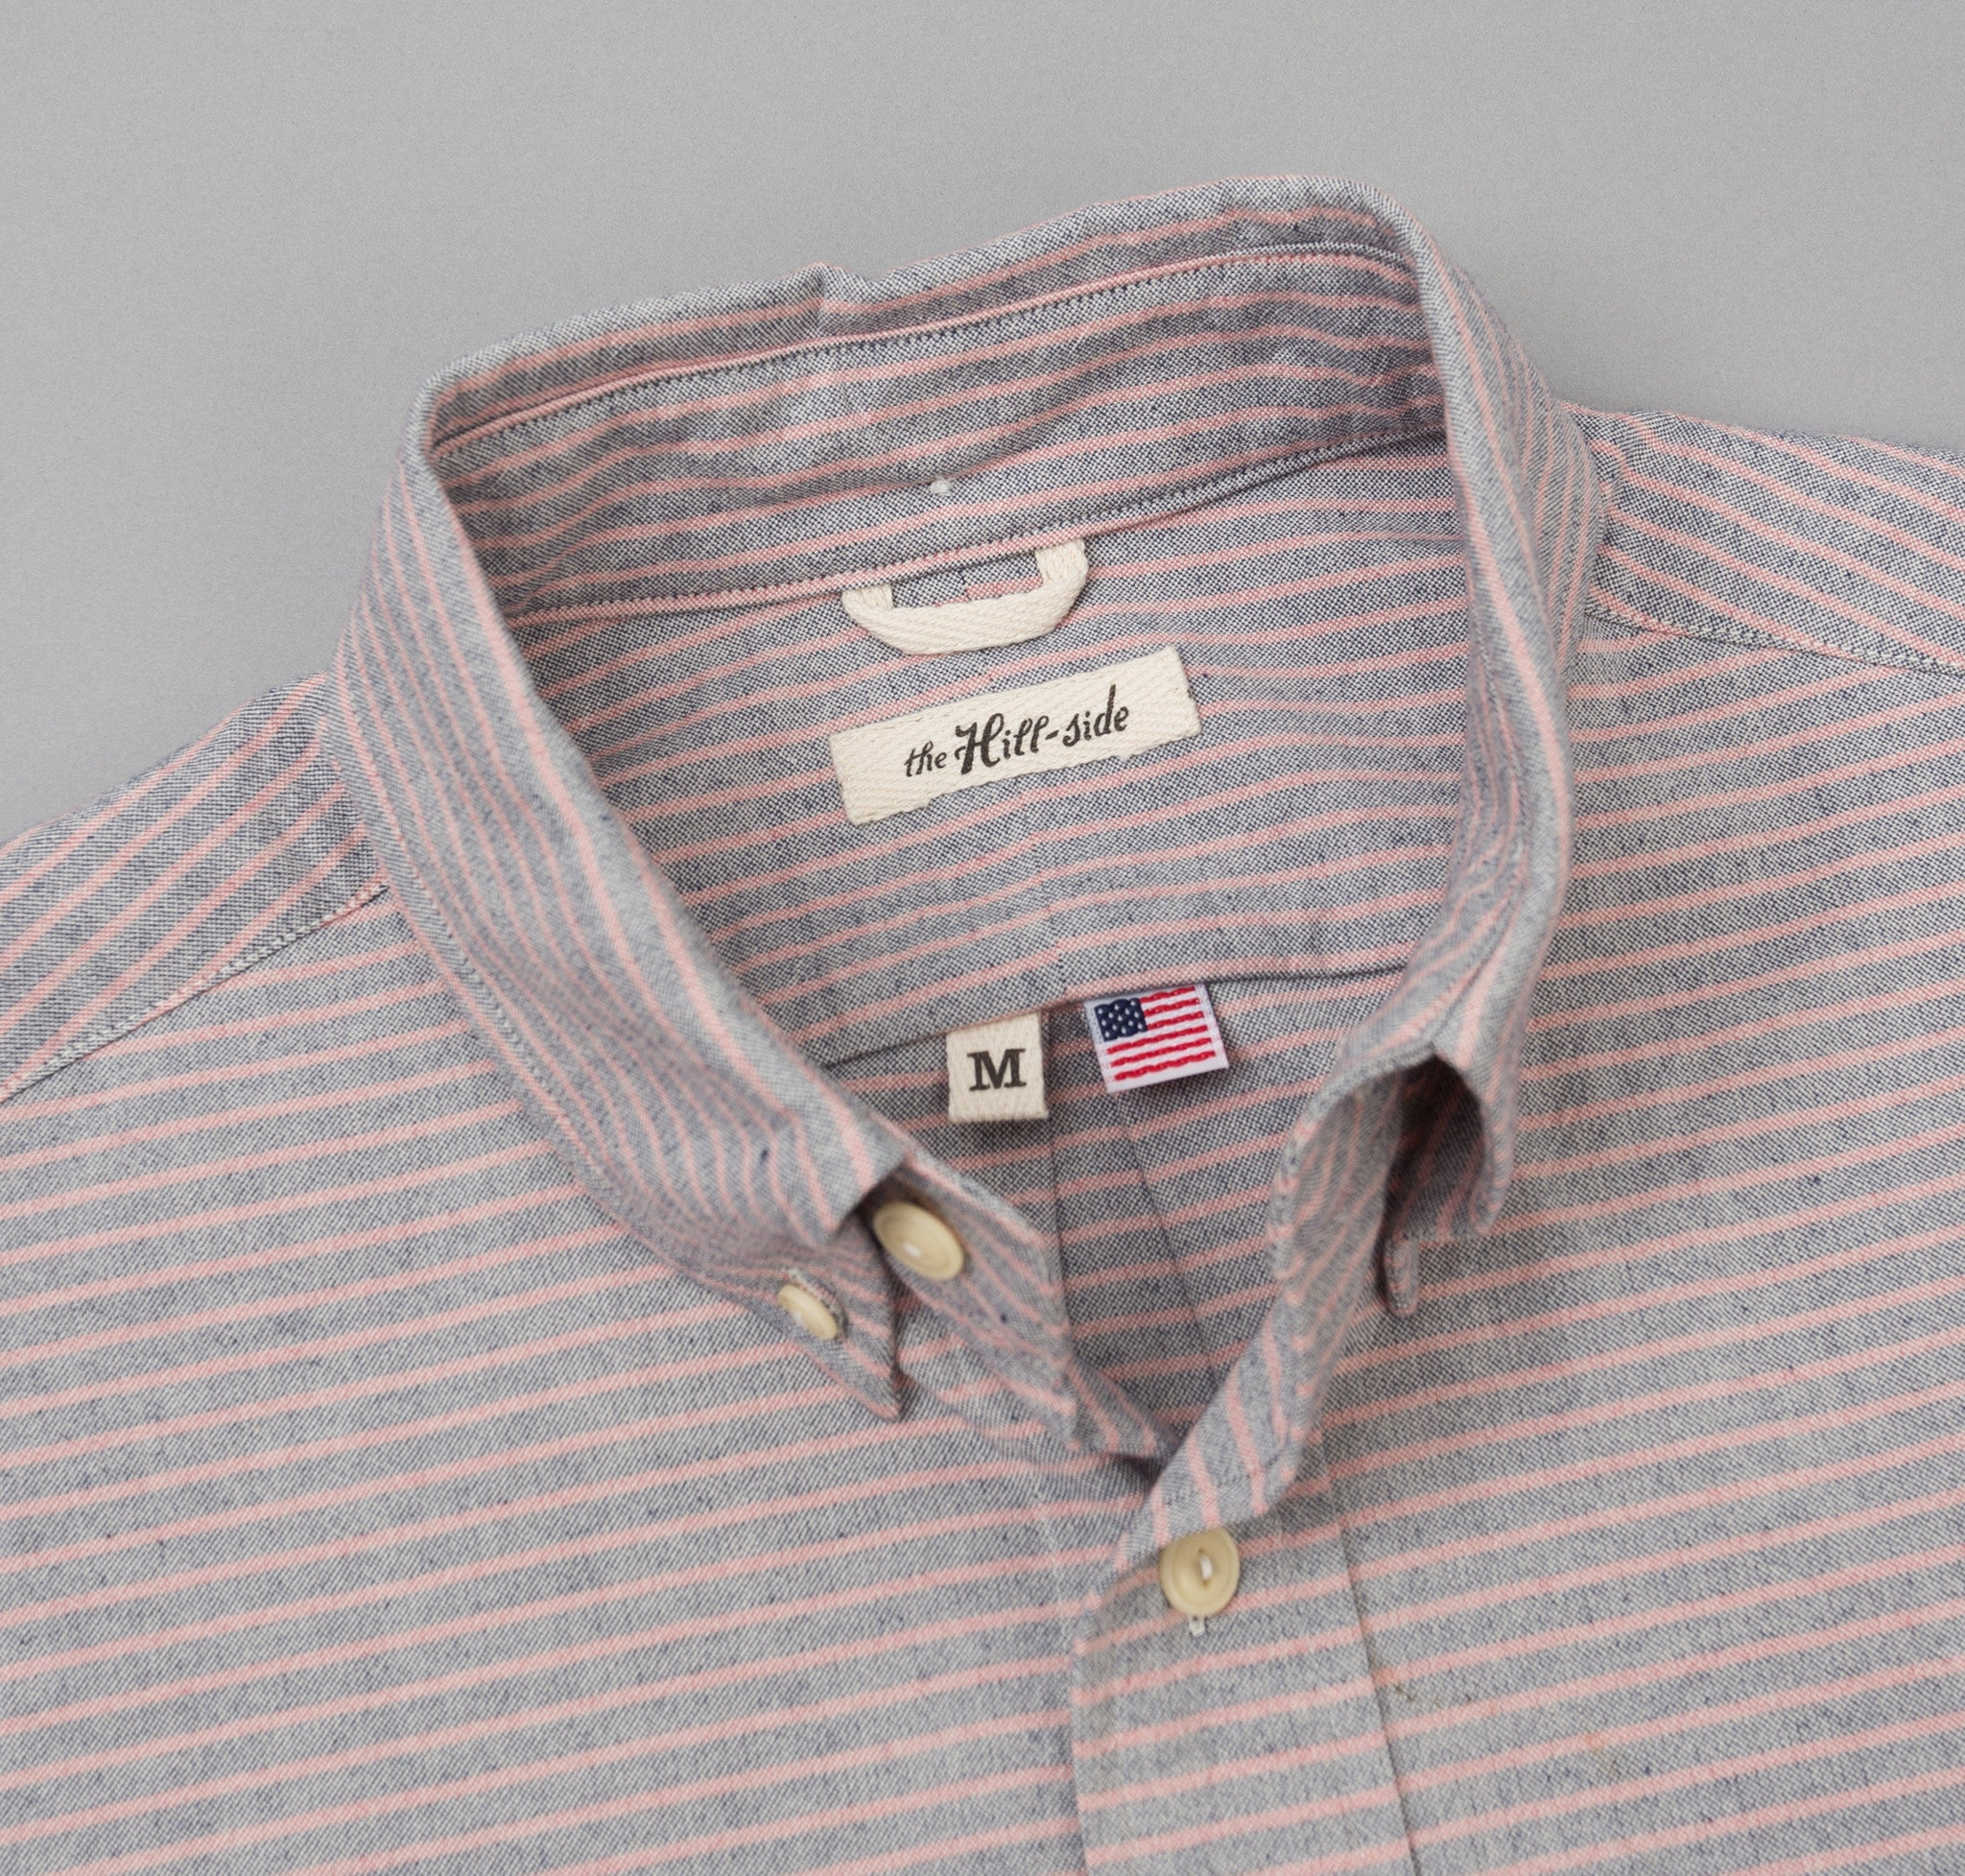 The Hill-Side - TH-S Mills Natural Warp Border Stripe Long Sleeve Standard Shirt, Navy / Coral Pencil - SH1-353